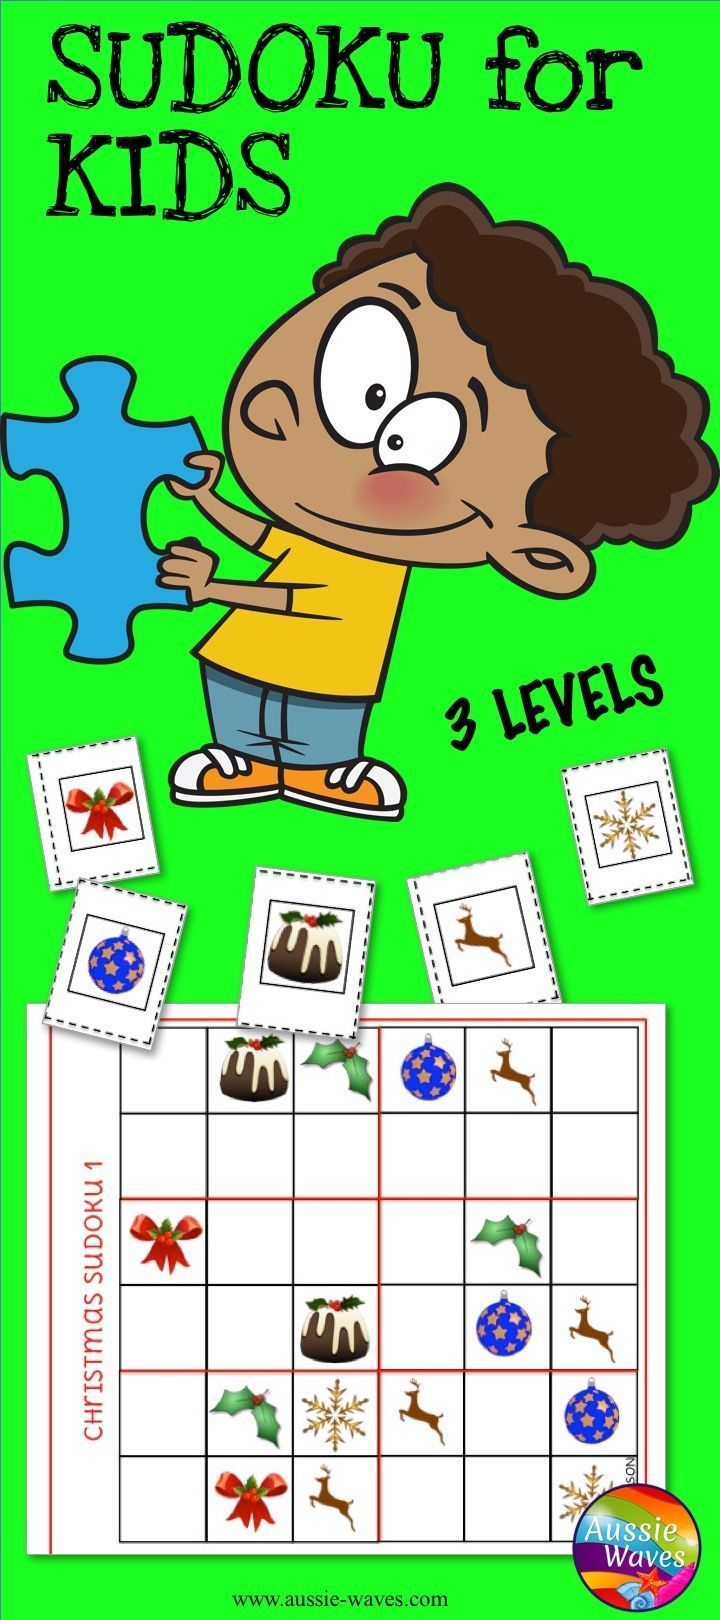 Sudoku for kids! Christmas printable activities. Logical thinking puzzles. Sy=tart easy and build skills.